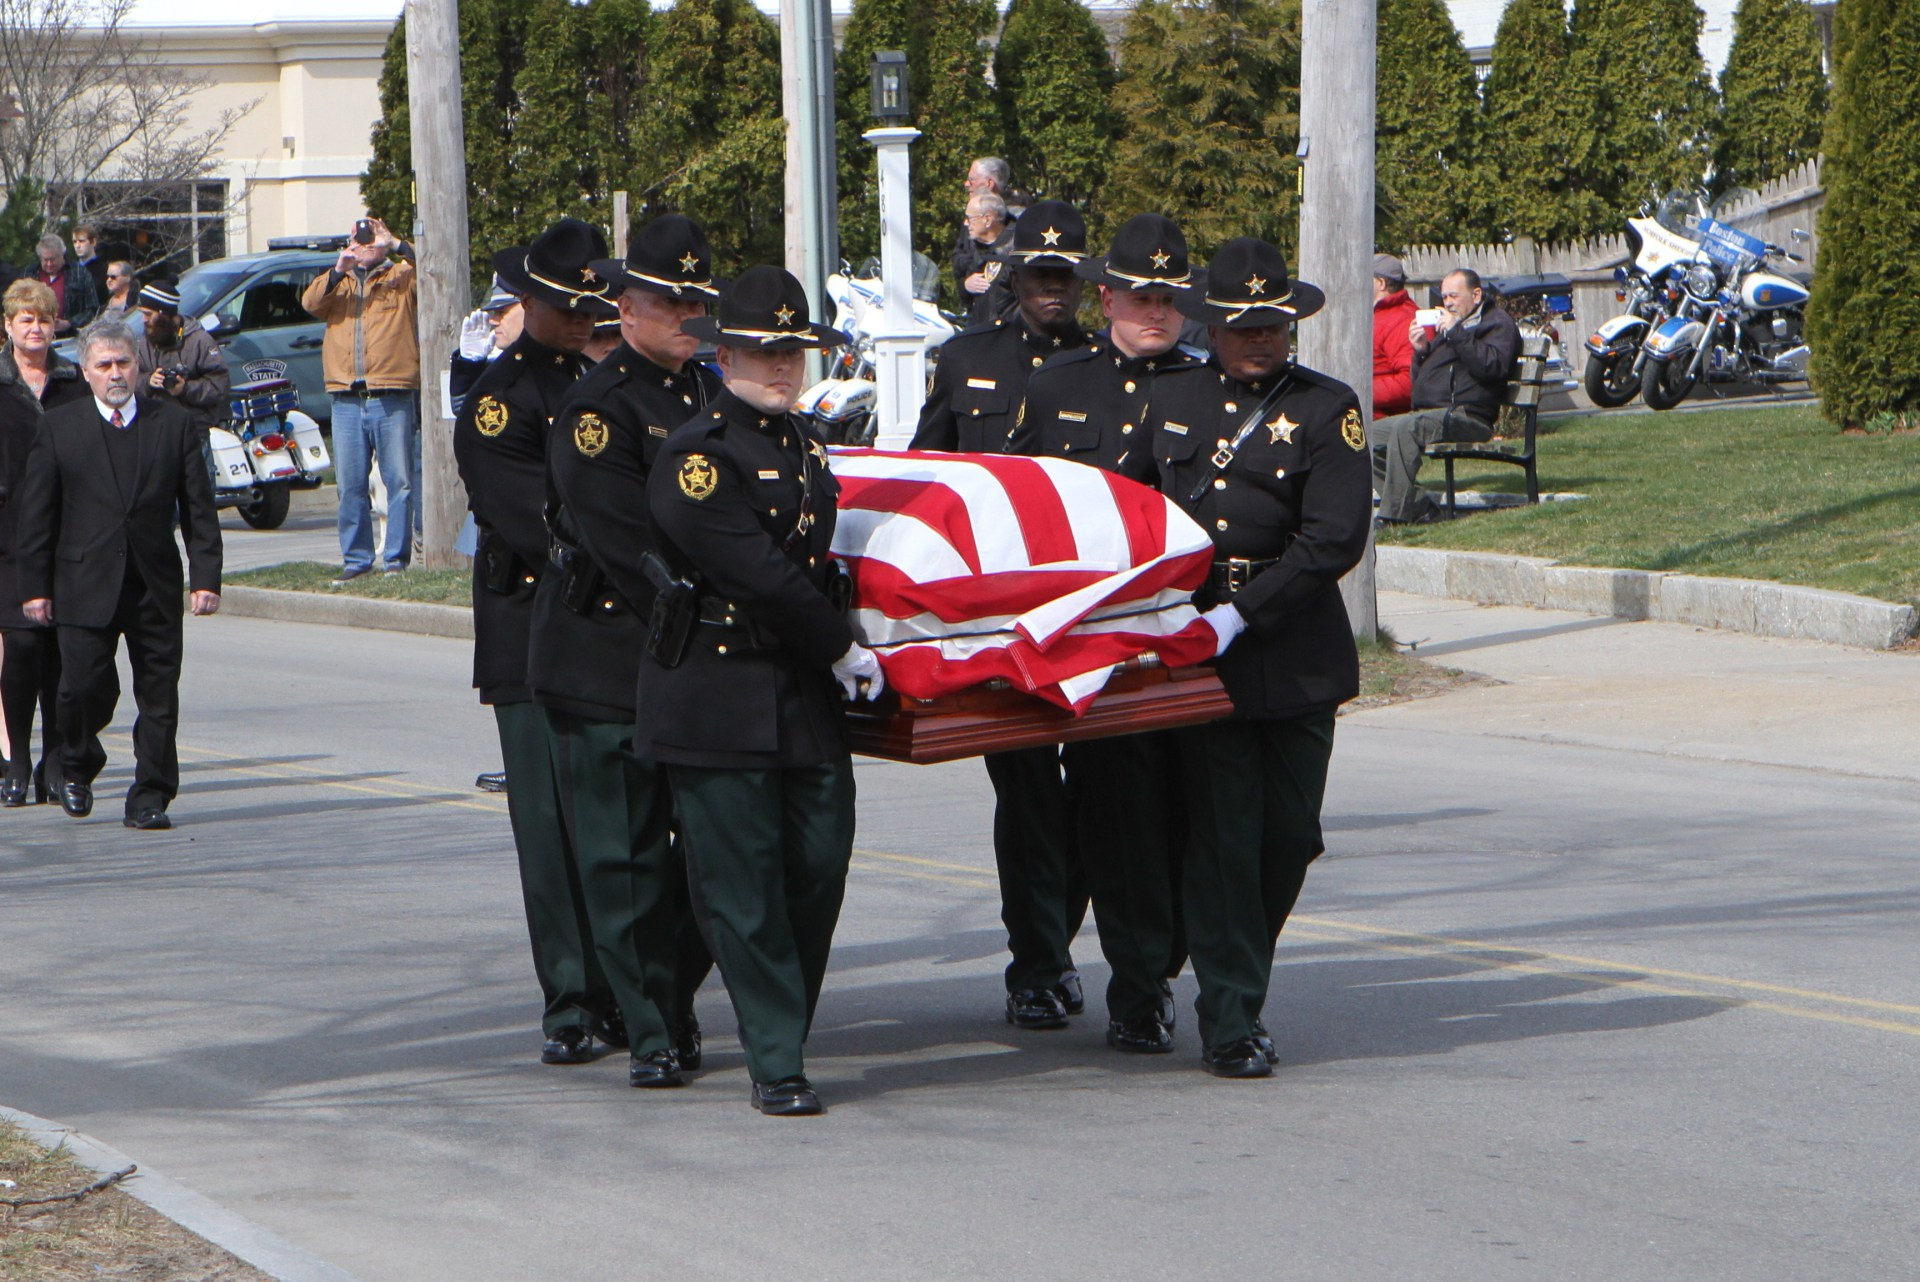 Deputy Sheriff John R. Kotfila, Jr. Funeral - Falmouth, Massachusetts - March 23, 2016